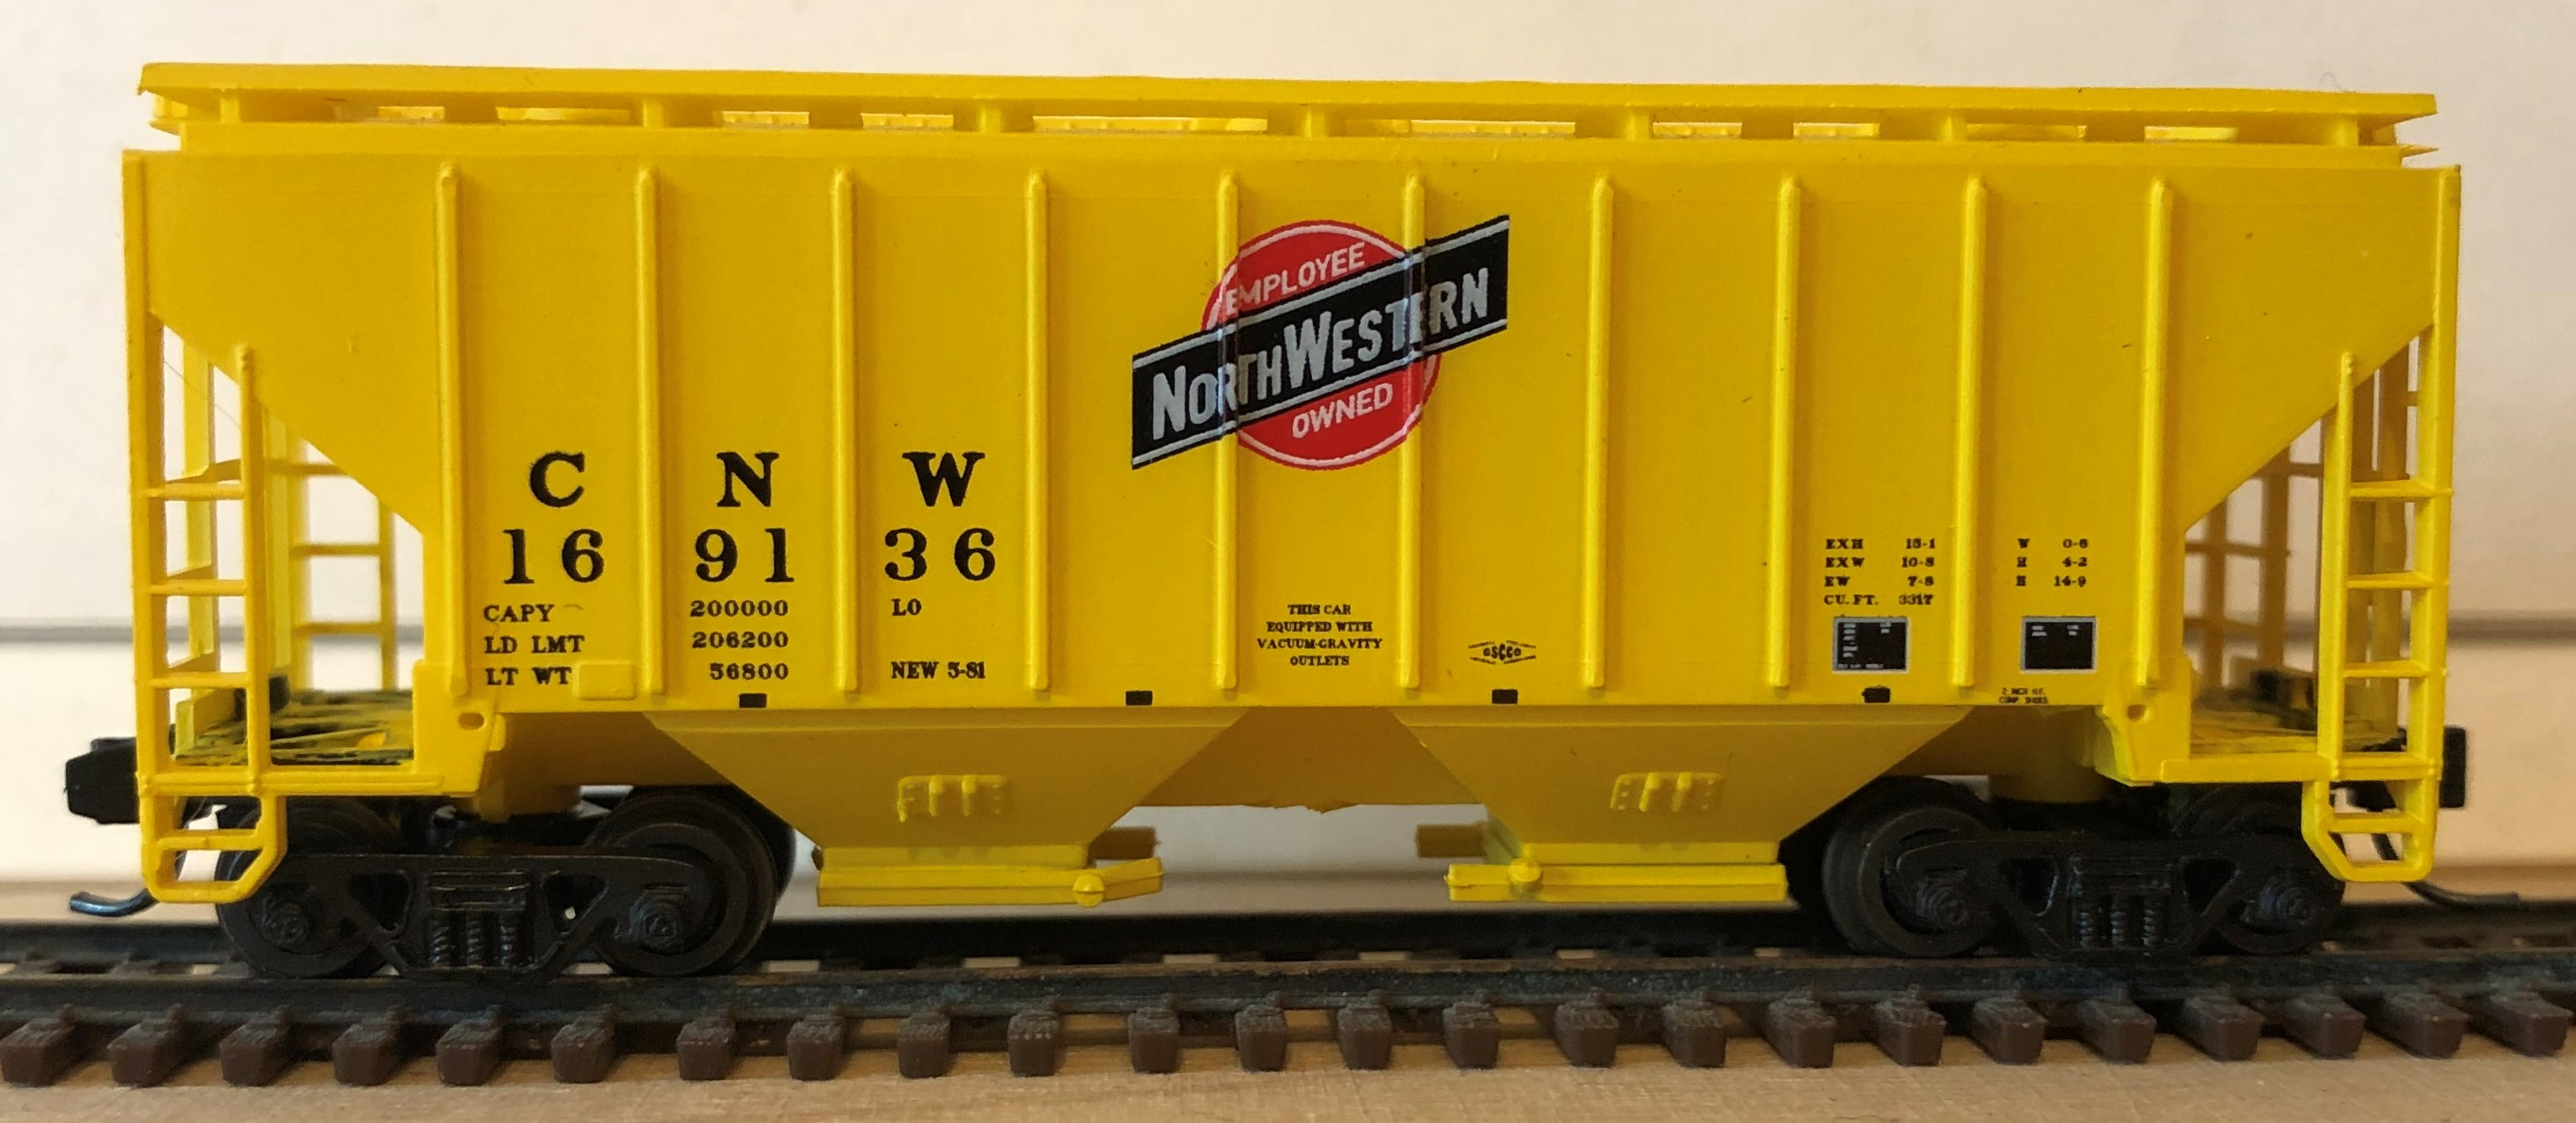 N Scale - Red Caboose - 15020 - Covered Hopper, 2-Bay, 3000 c.f. - Chicago & North Western - 169136